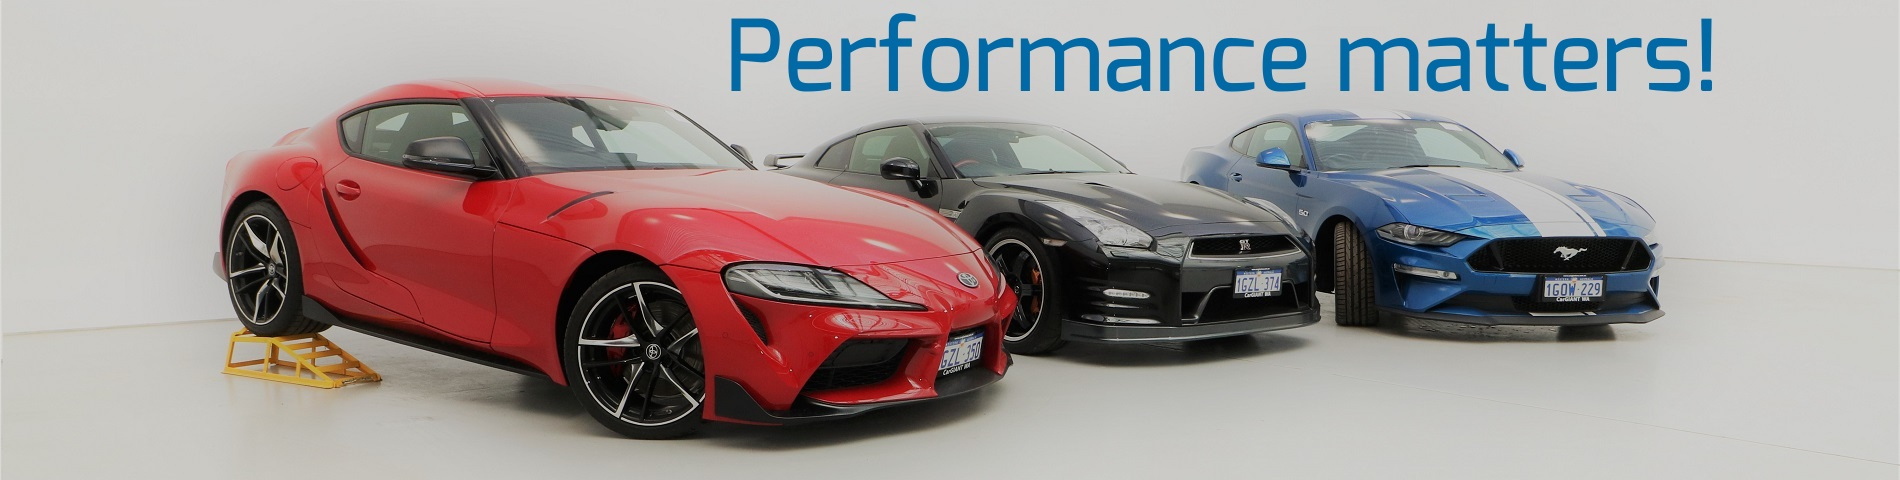 Performance matters at Car Giant WA